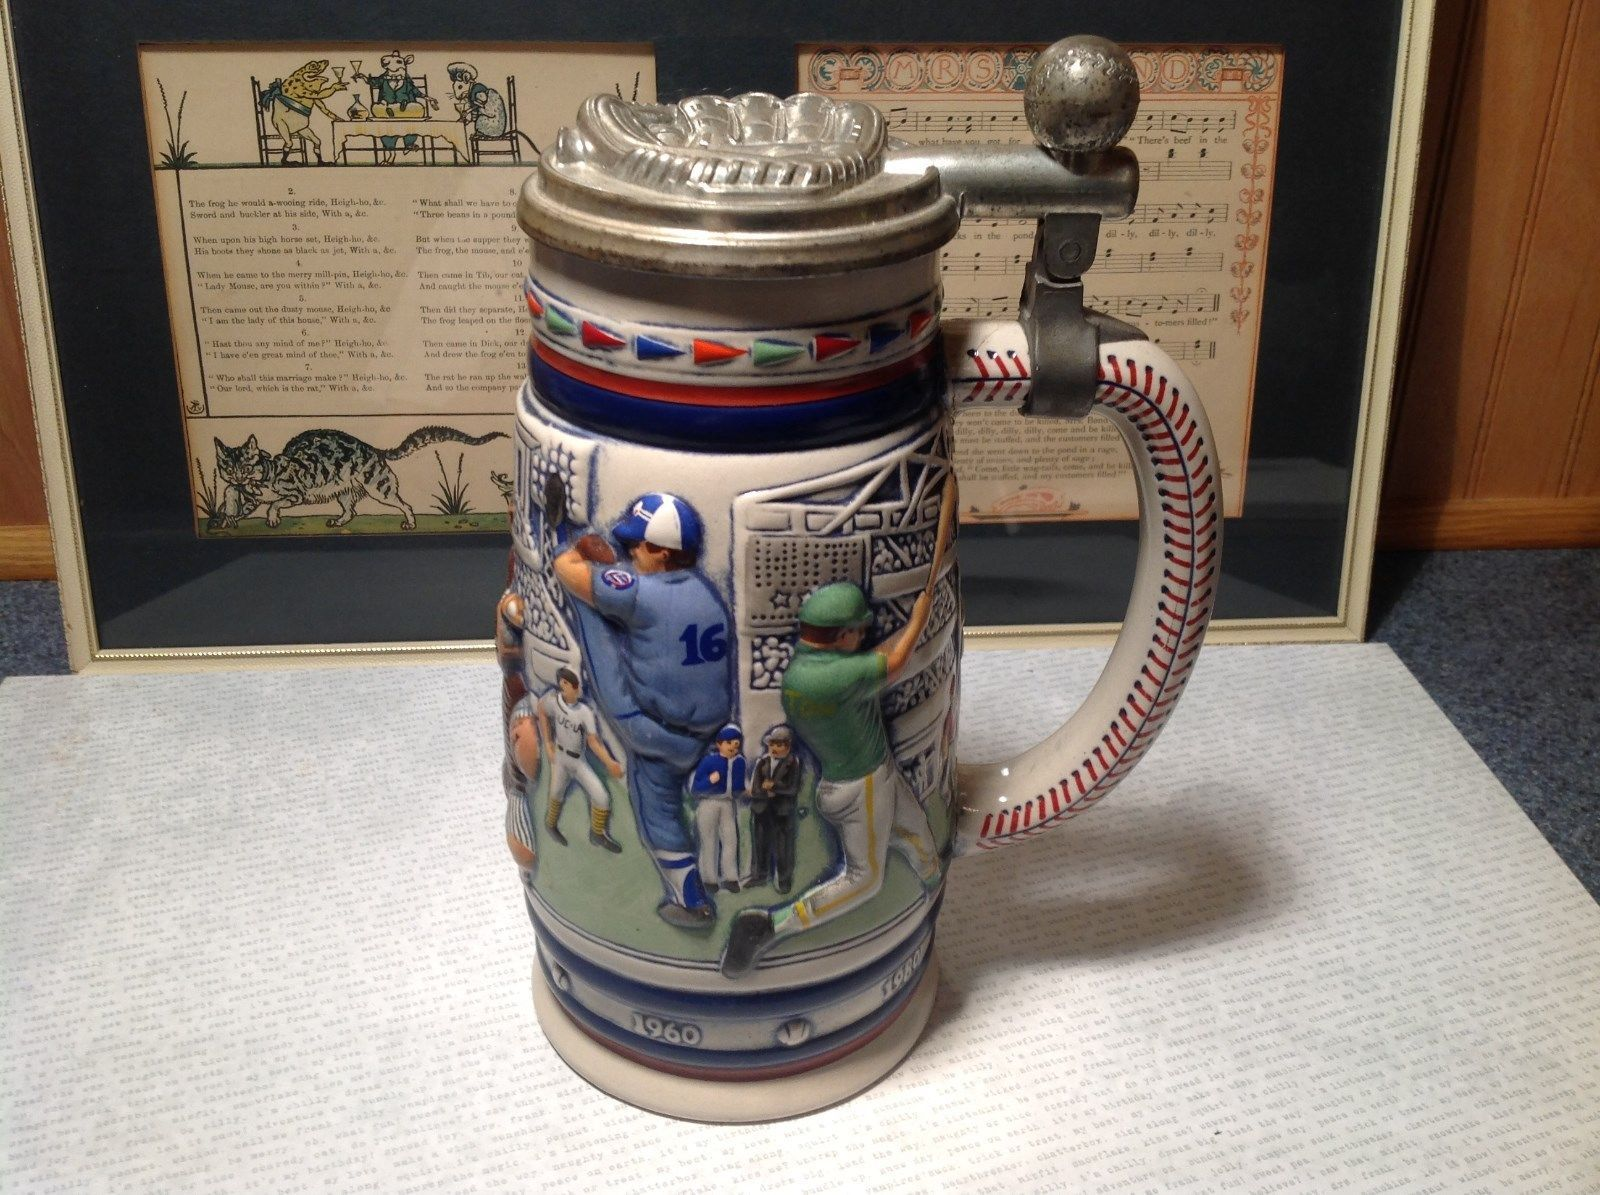 Vintage Ceramic Handmade Beer Stein with Pewter Lid Baseball Theme